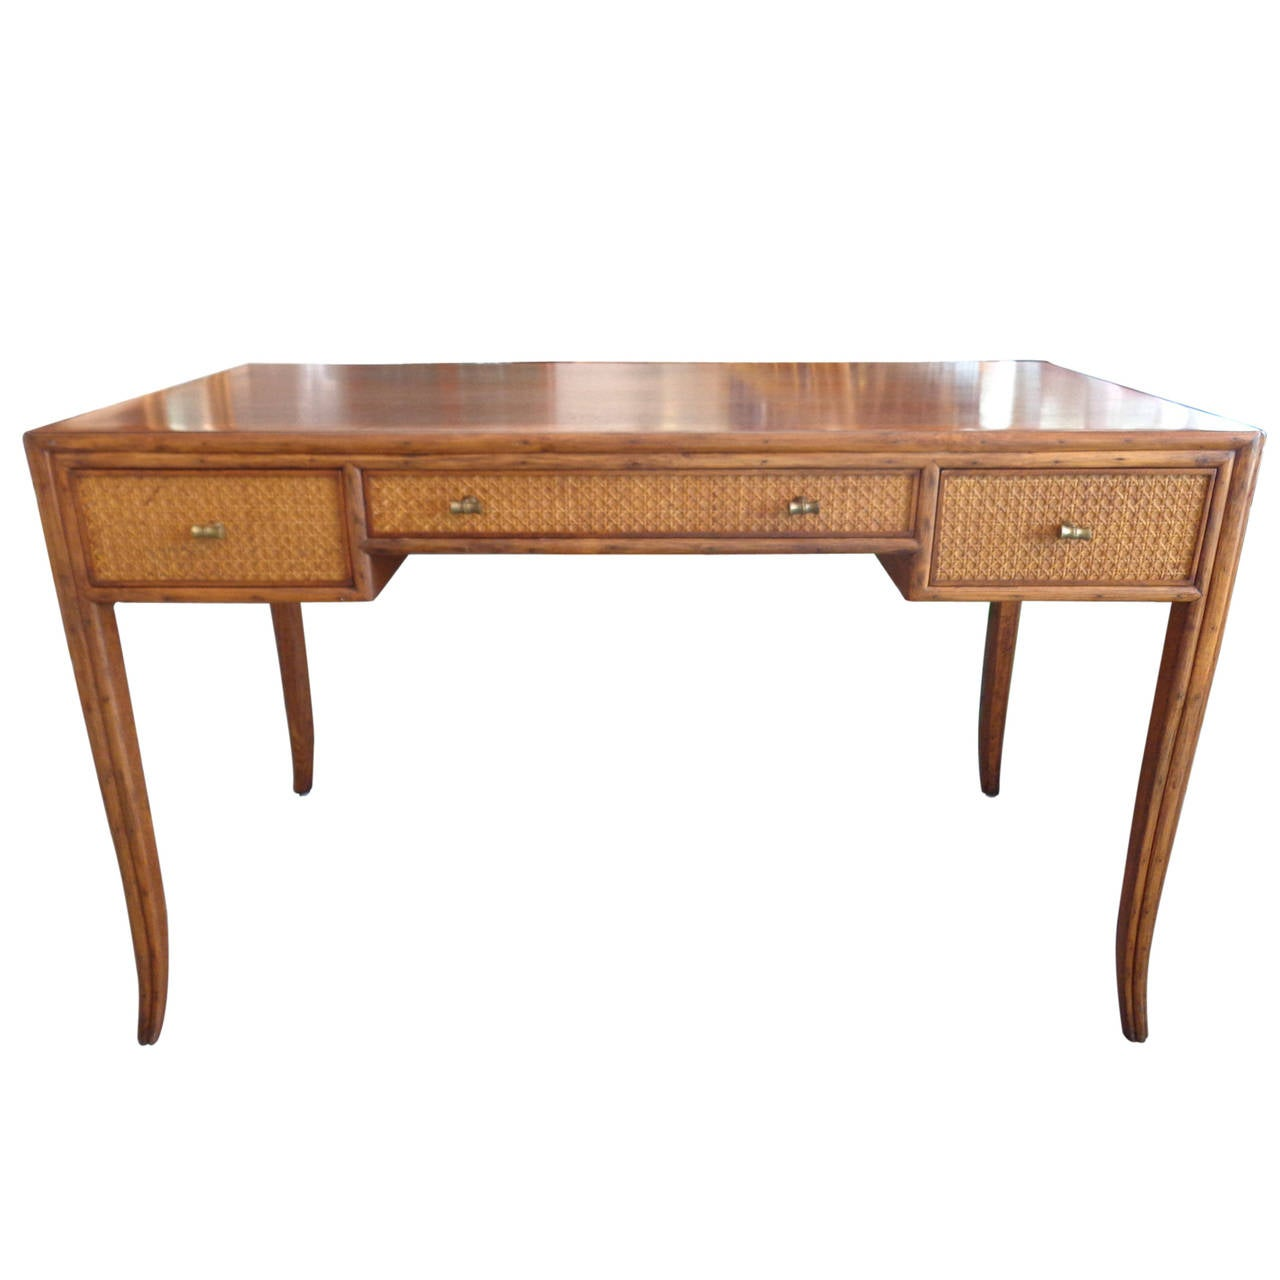 wicker writing desk ★classic 55 writing desk by yesteryear wicker™ if you want to buy classic 55 writing desk by yesteryear wicker ok you want deals and save online shopping has now.